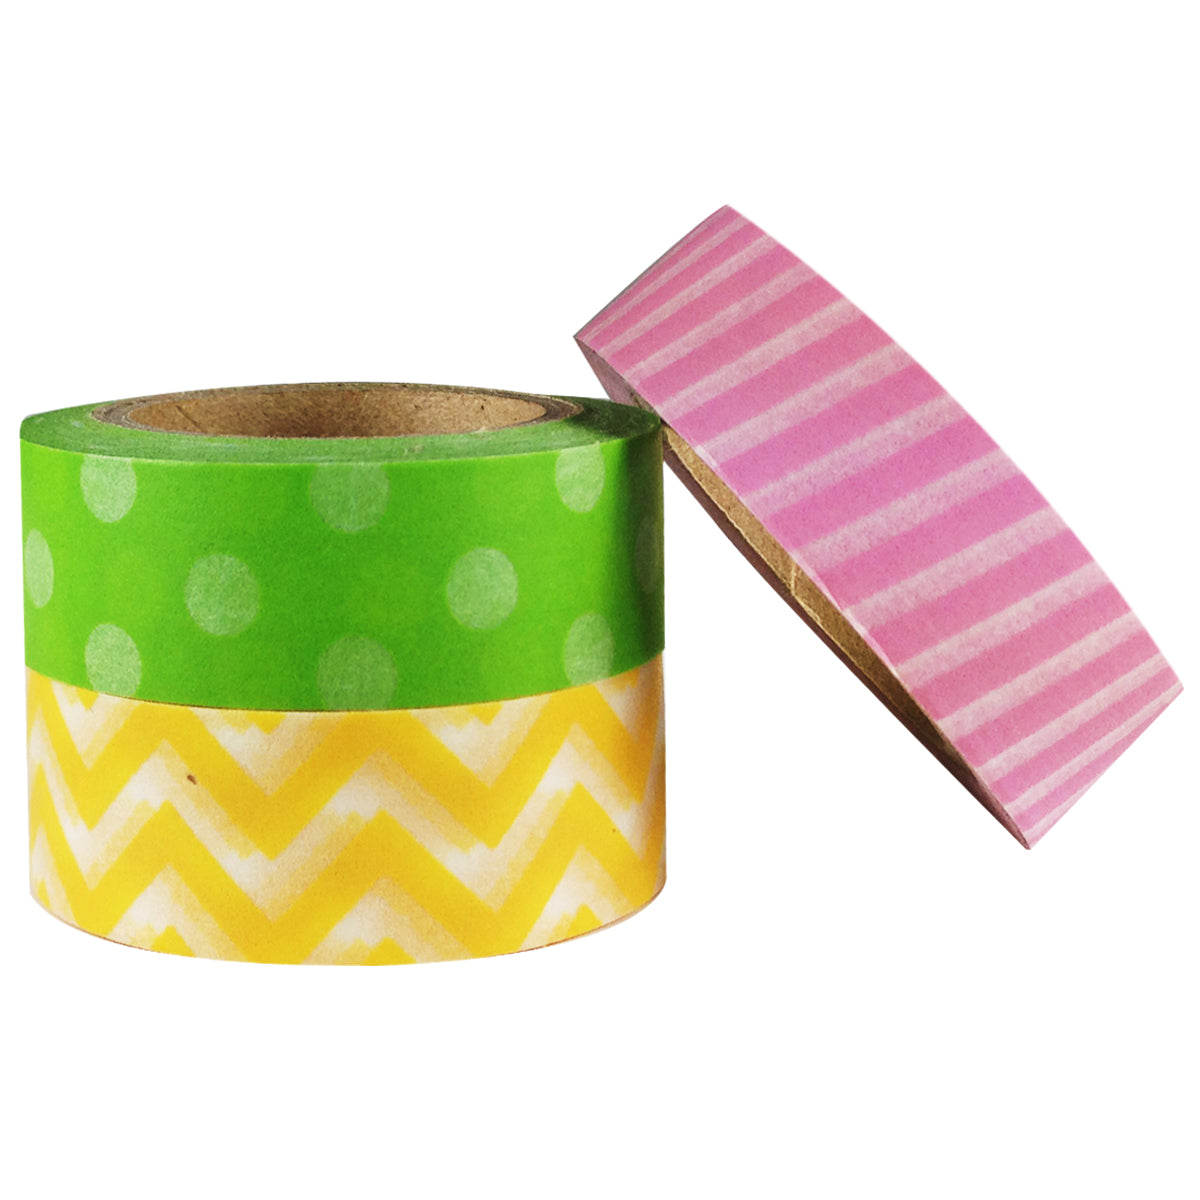 Wrapables It's a Girl! Japaese Washi Tape Masking Tape, set of 3